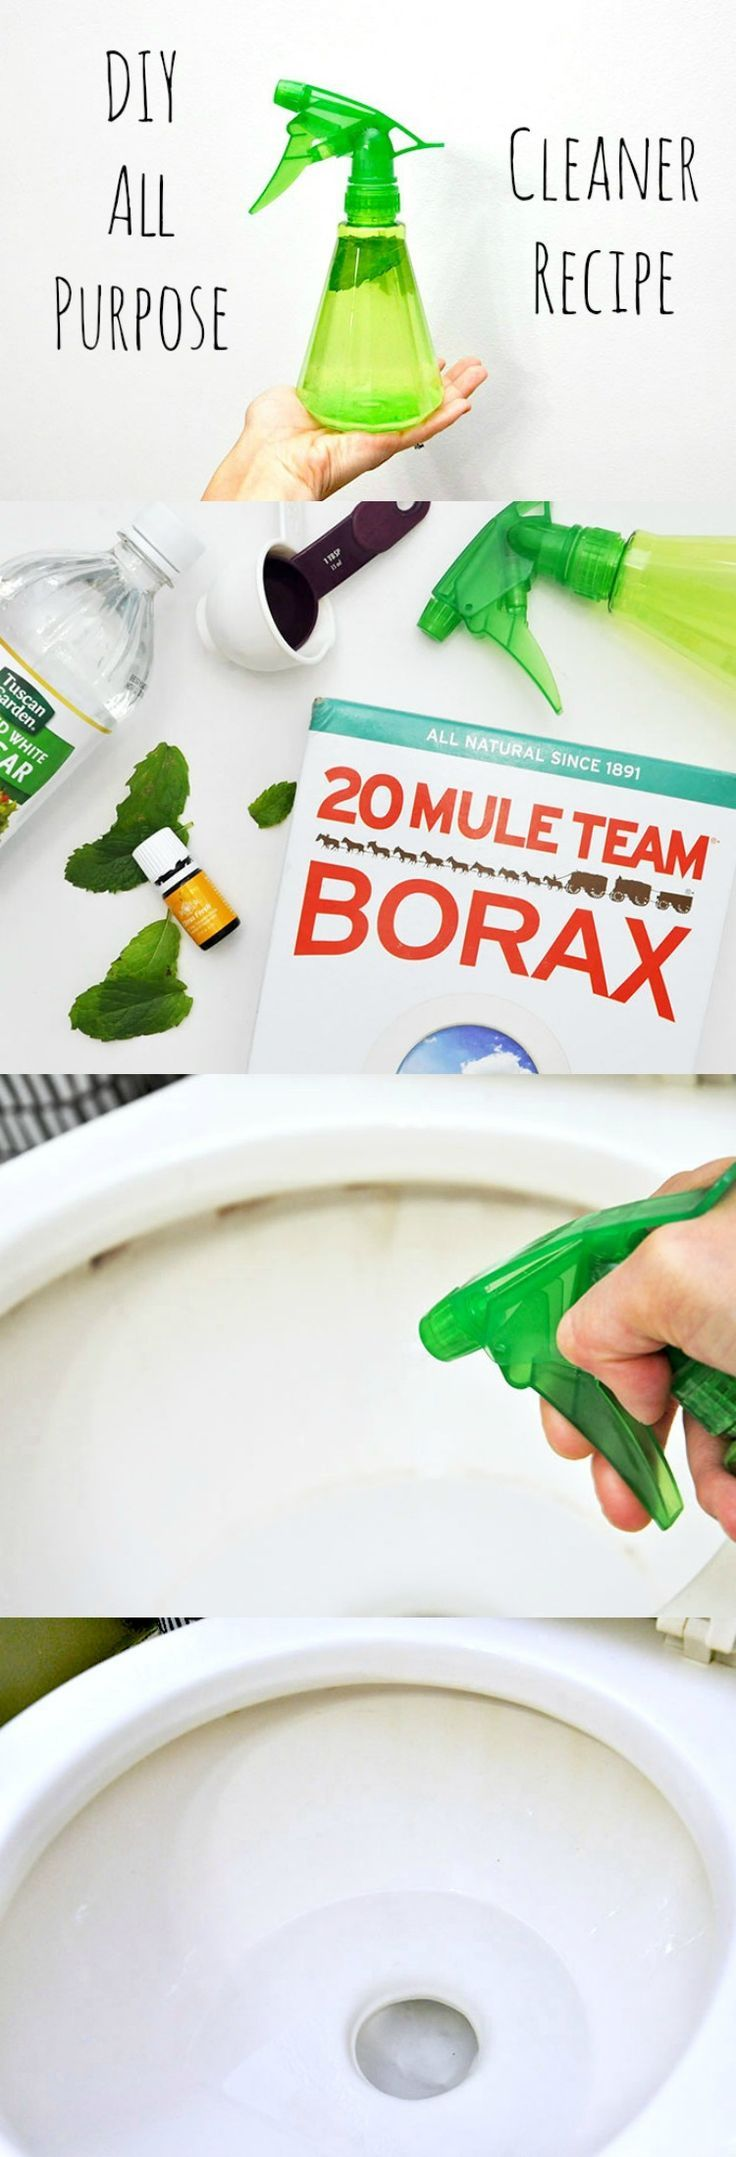 This DIY all purpose cleaner is a great little freshener to have in your cleaning arsenal. Best part? It smells great and is free of harsh yucky chemicals!